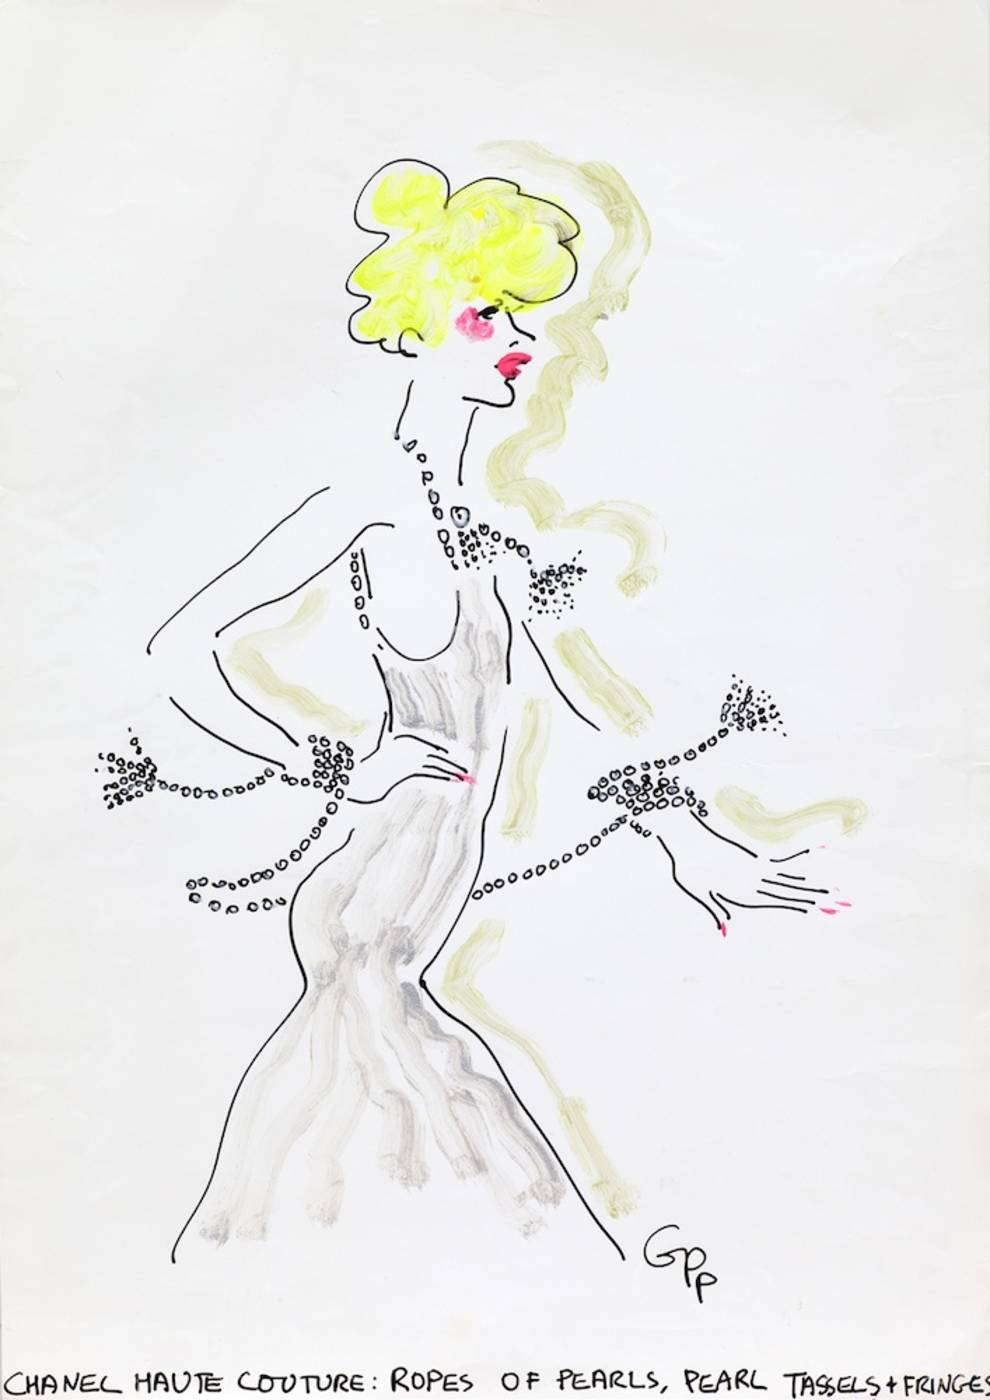 Chanel Haute Couture Blond